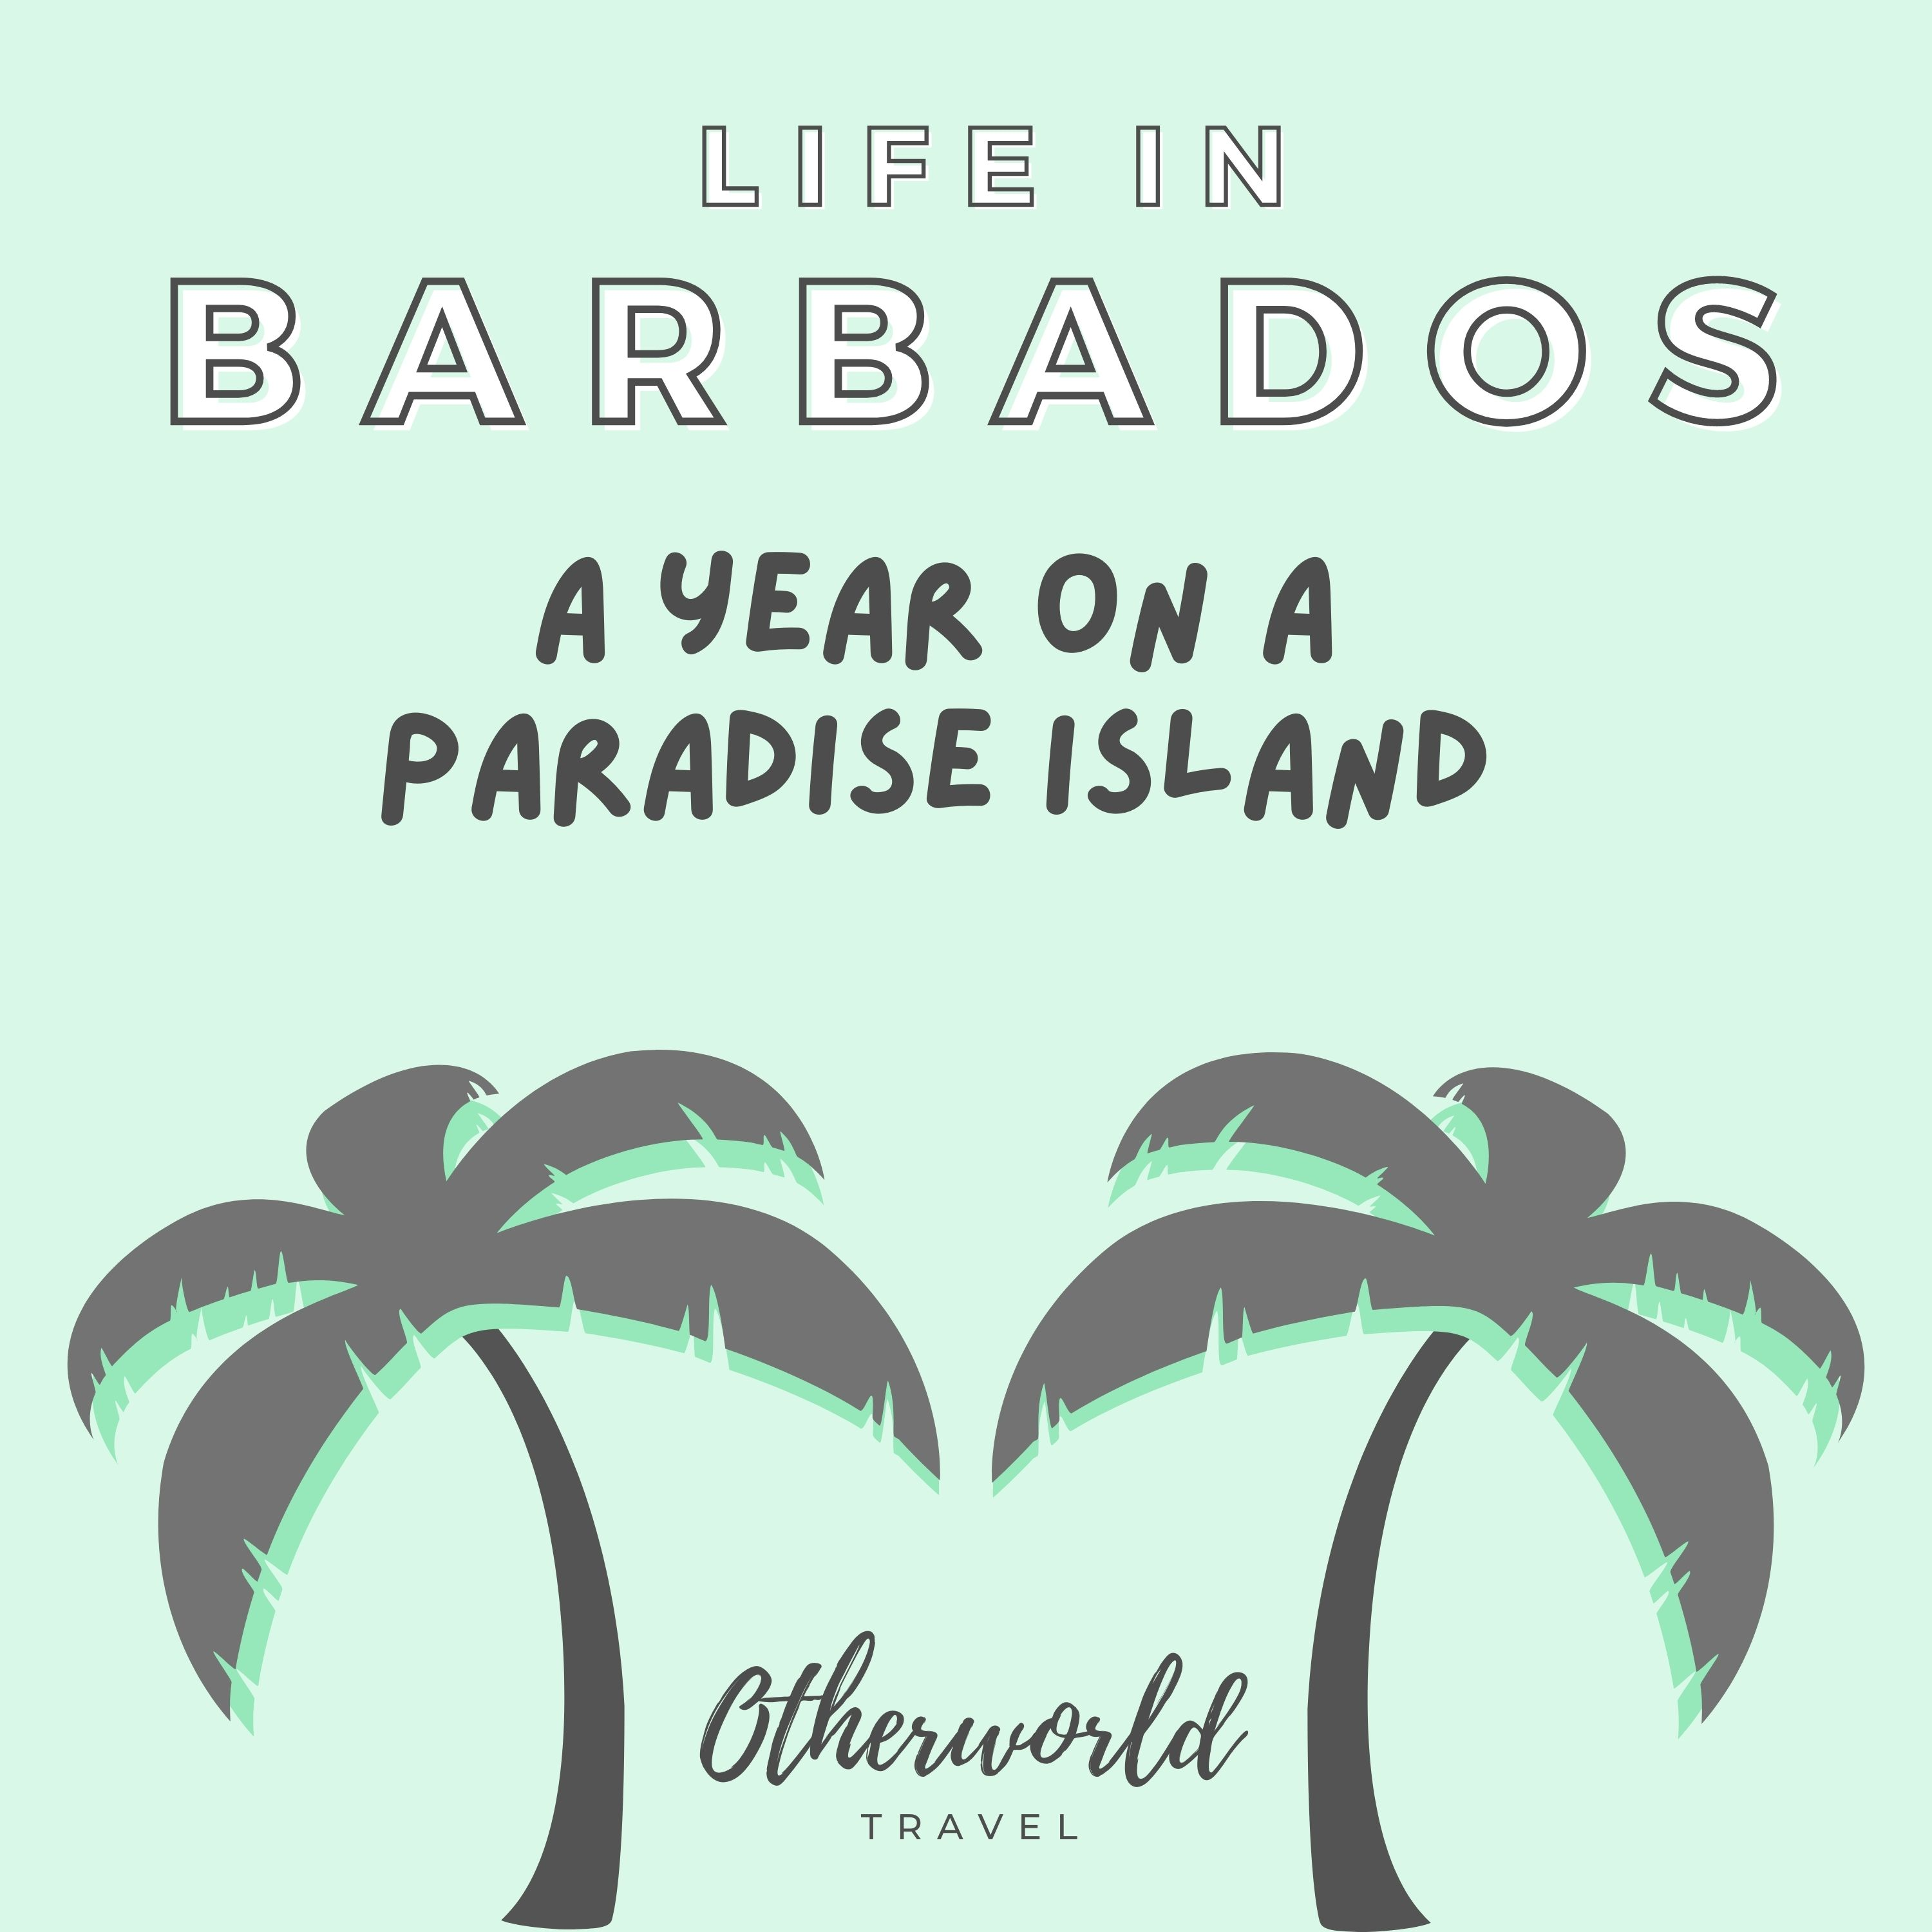 Barbados Welcome Stamp: relocating to the Bajan paradise island